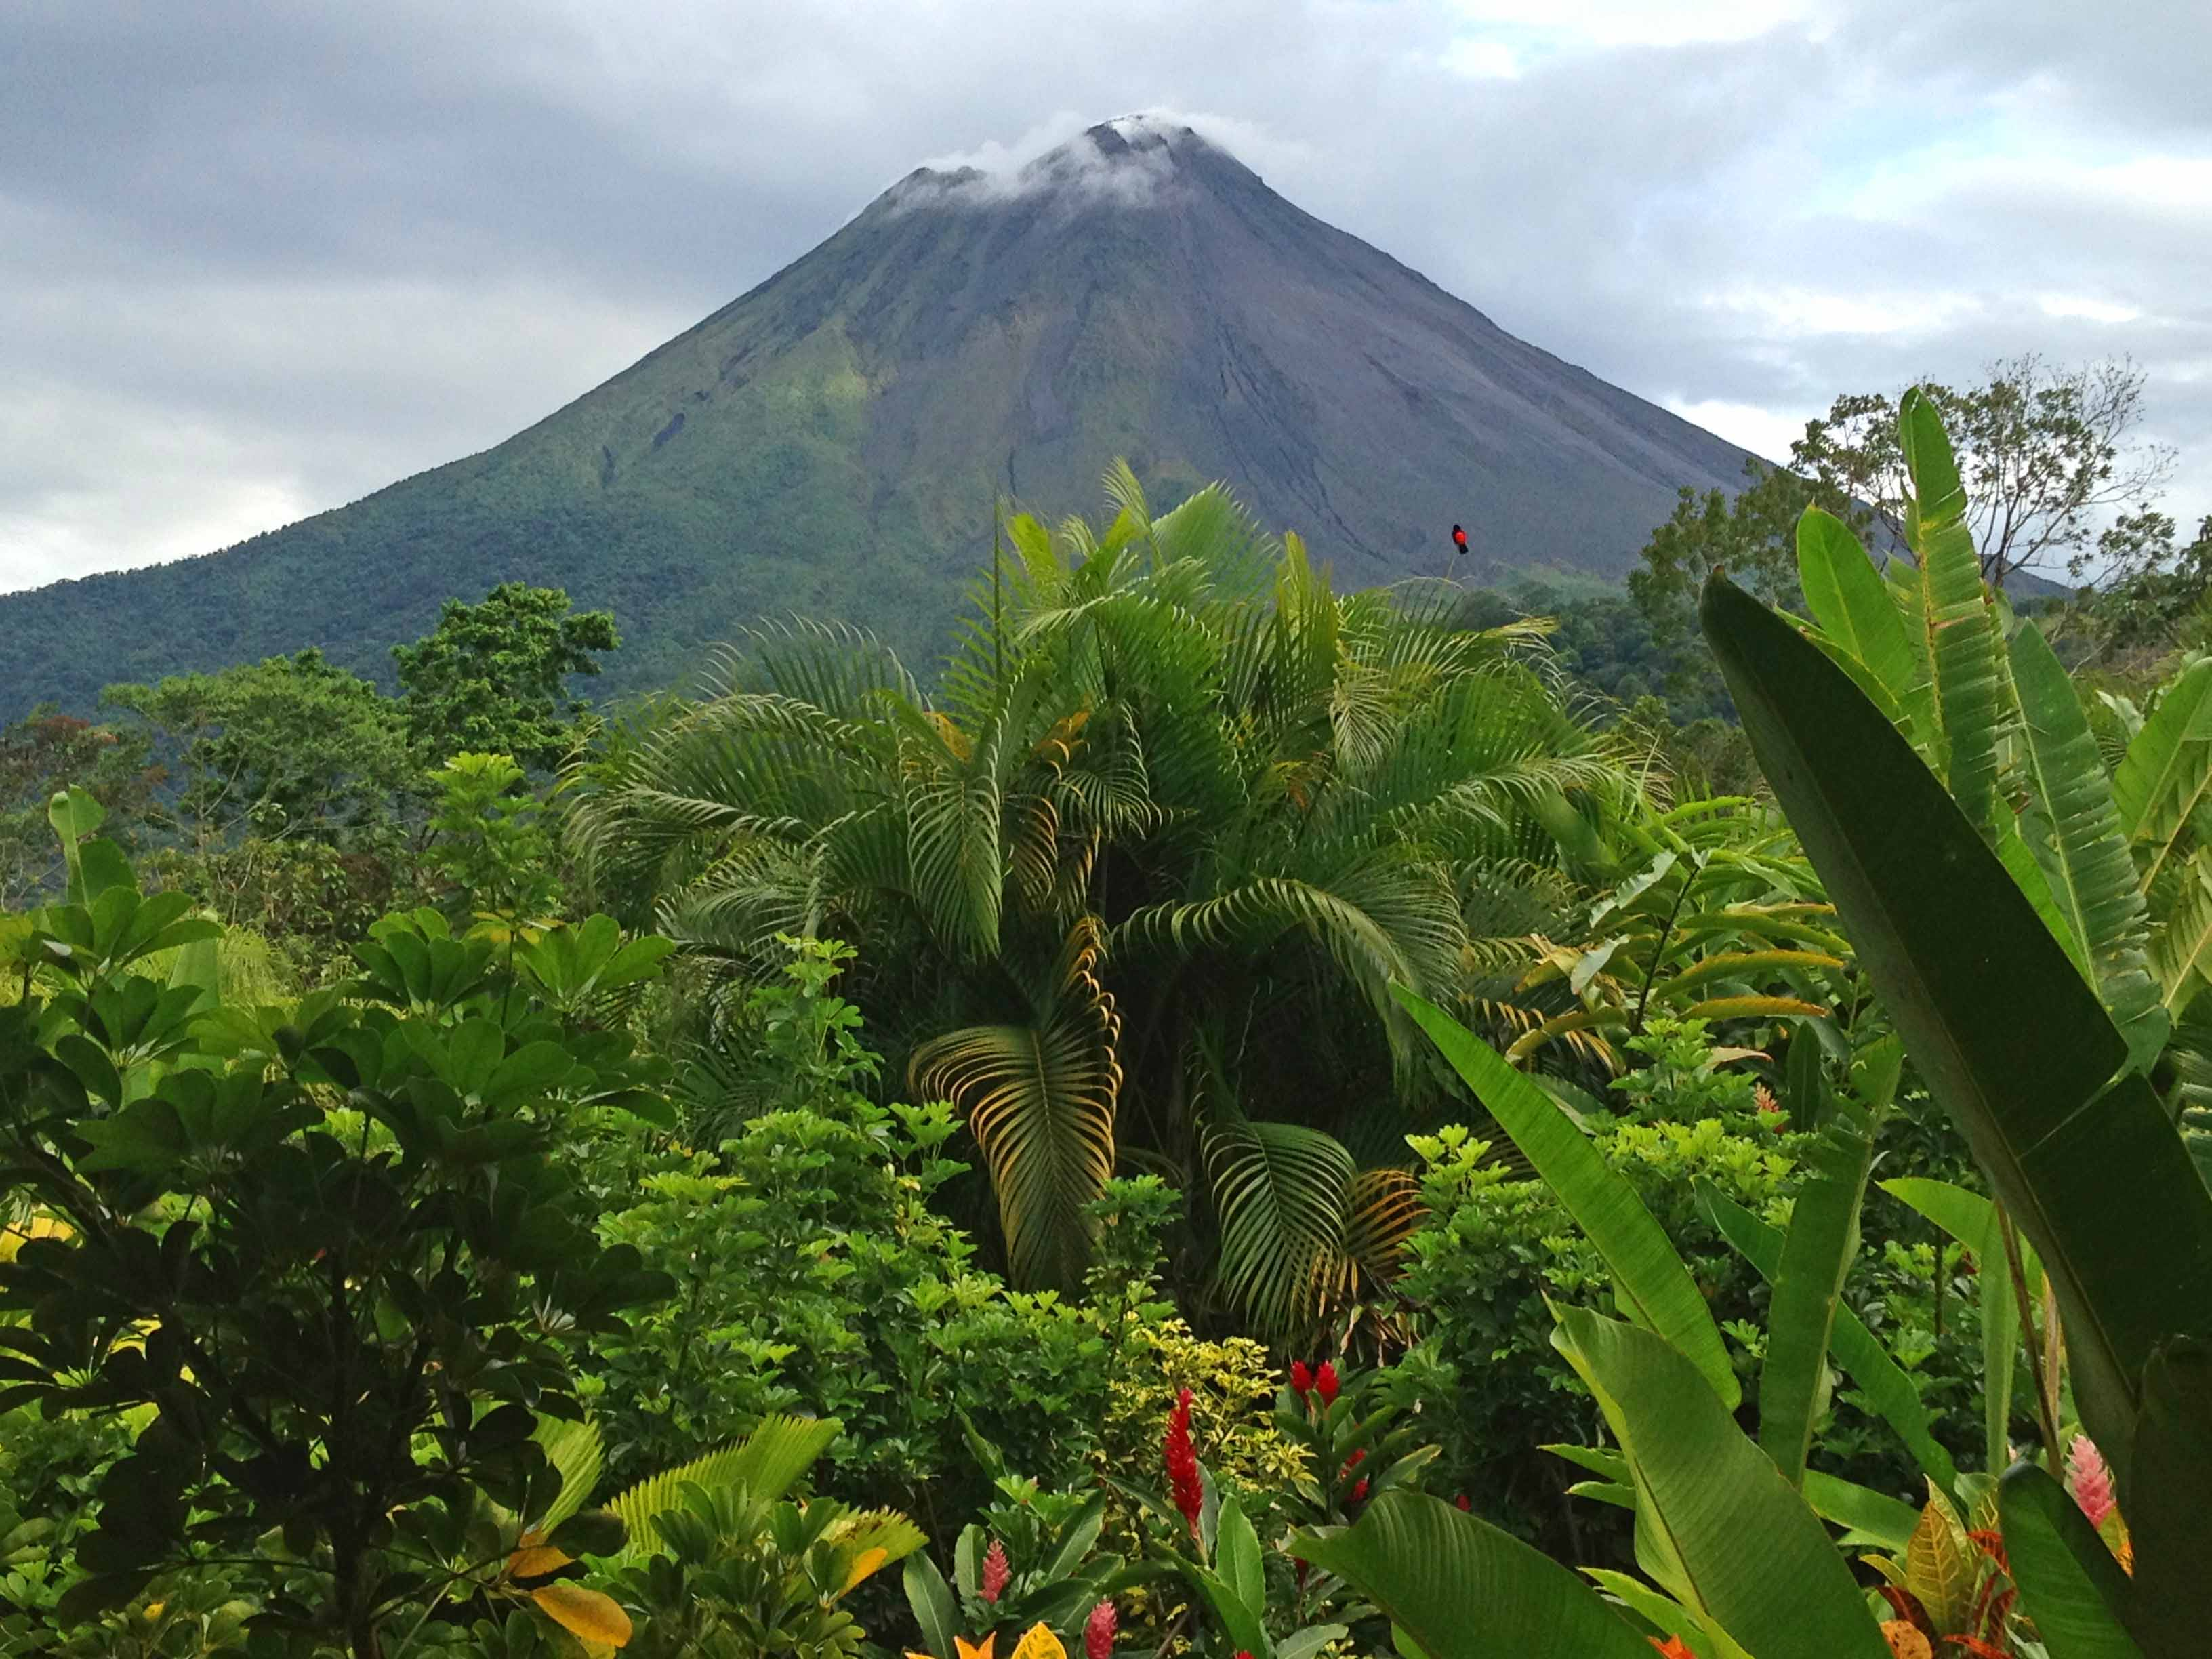 Here's a shot I took of the Arenal Volcano in Costa Rica.